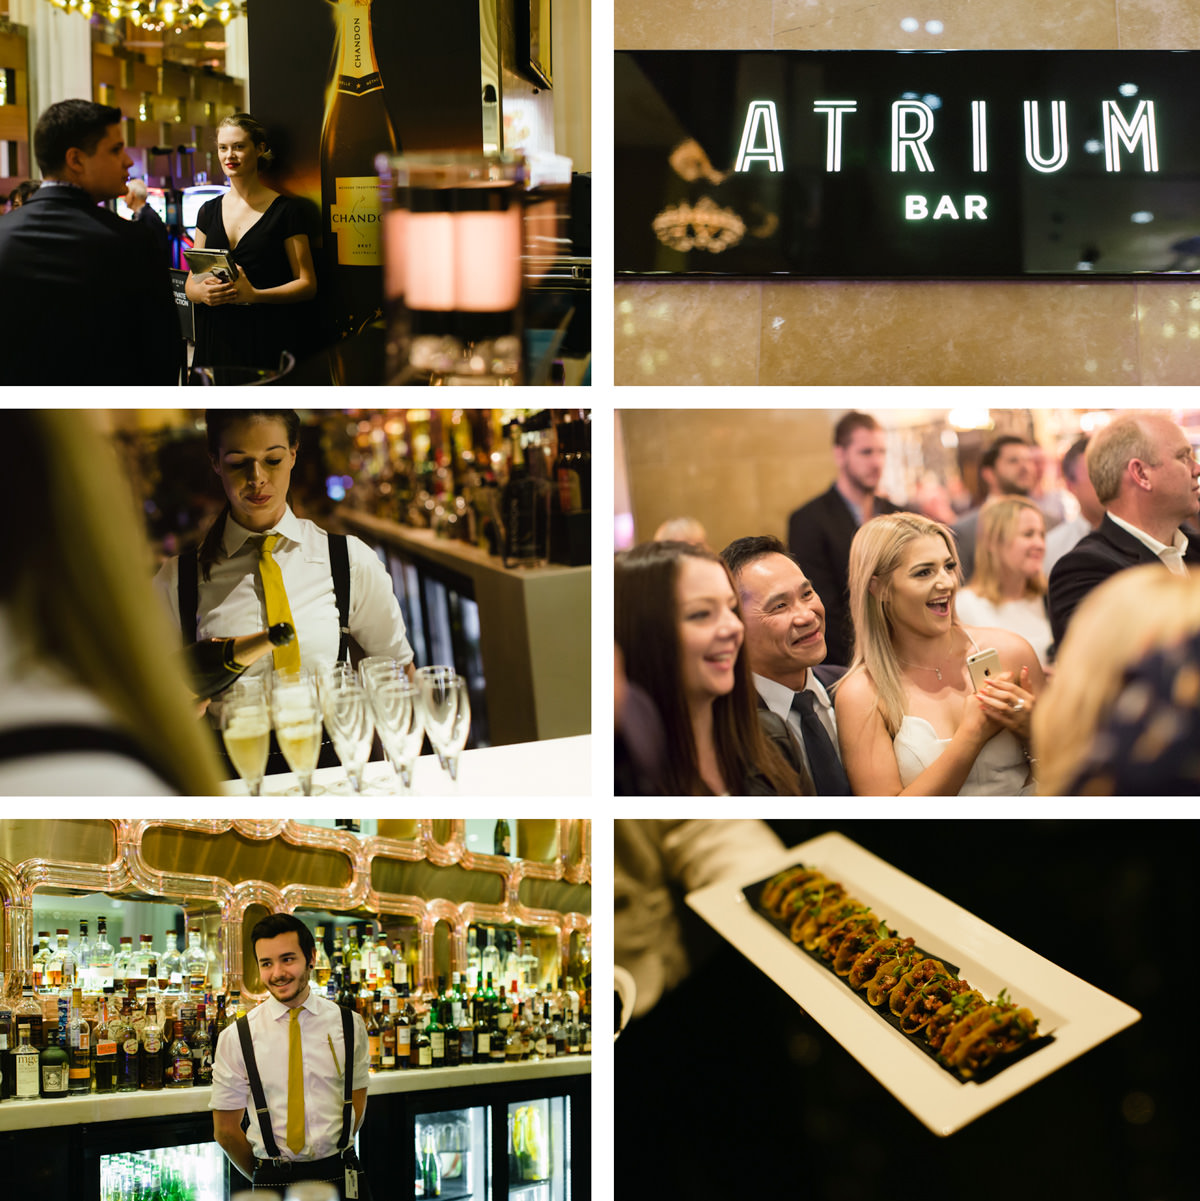 F1 event photography - F1 Party at Crown Asino Artrium Bar with Jenson Button - F1 Driver for McLaren Honda